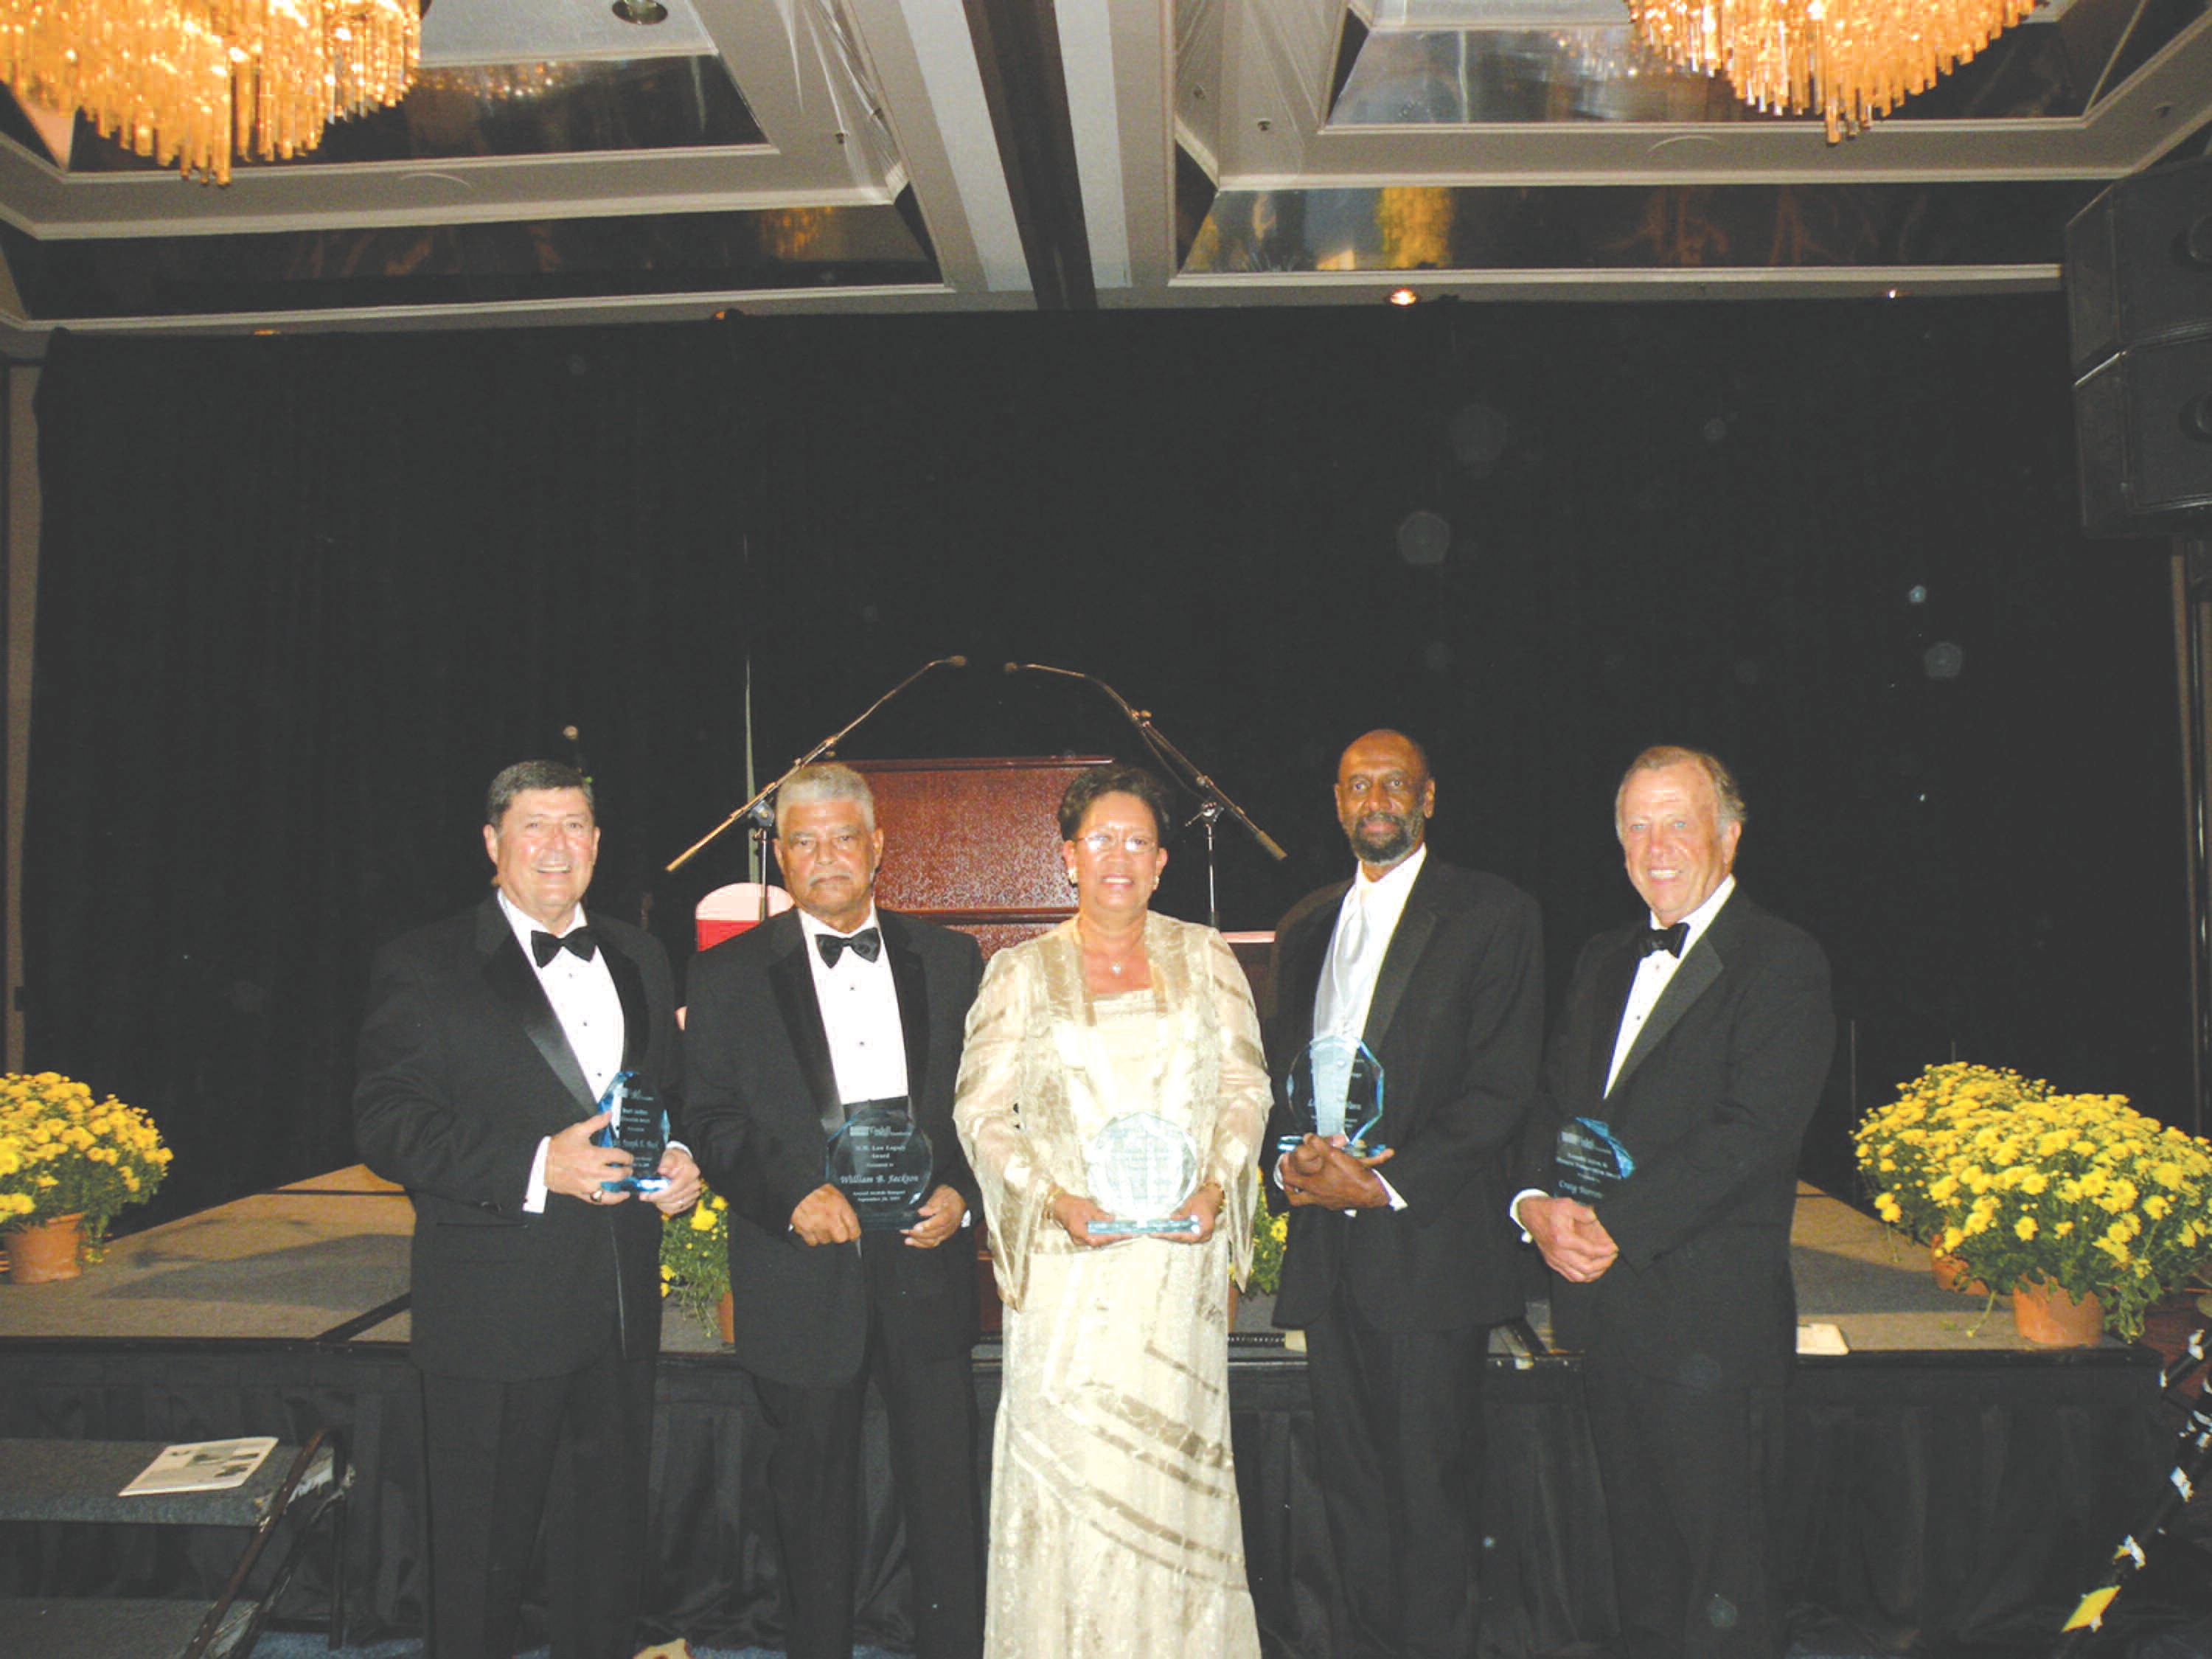 Pictured are award recipients (l-r): Joseph Buck, William B. Jackson, Shirley Barber James, Luther Vann and Craig Barrow, III